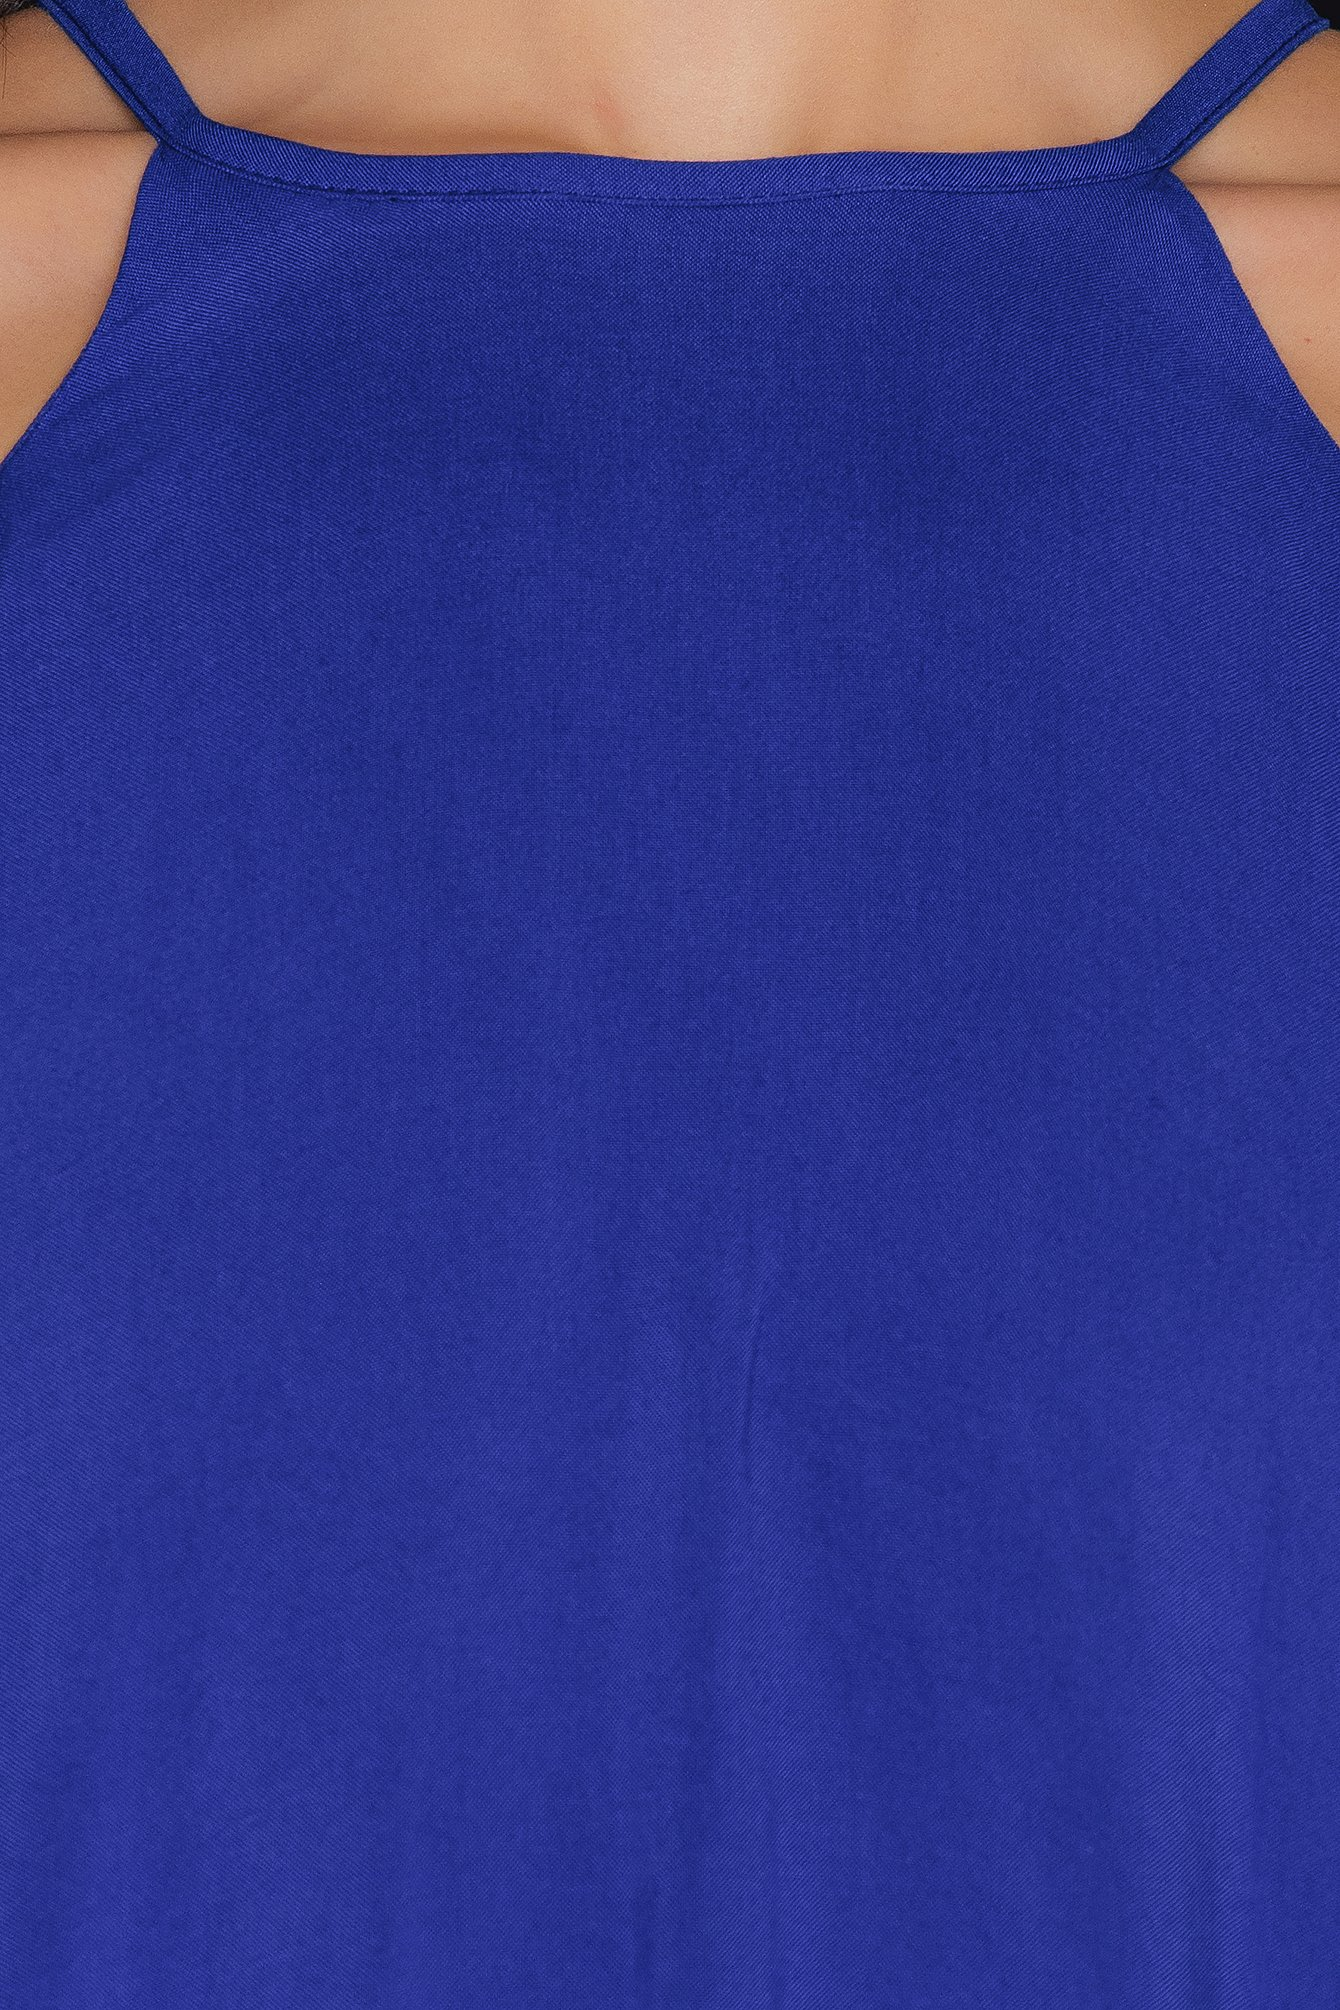 Royal Blue Saks Maxi Dress